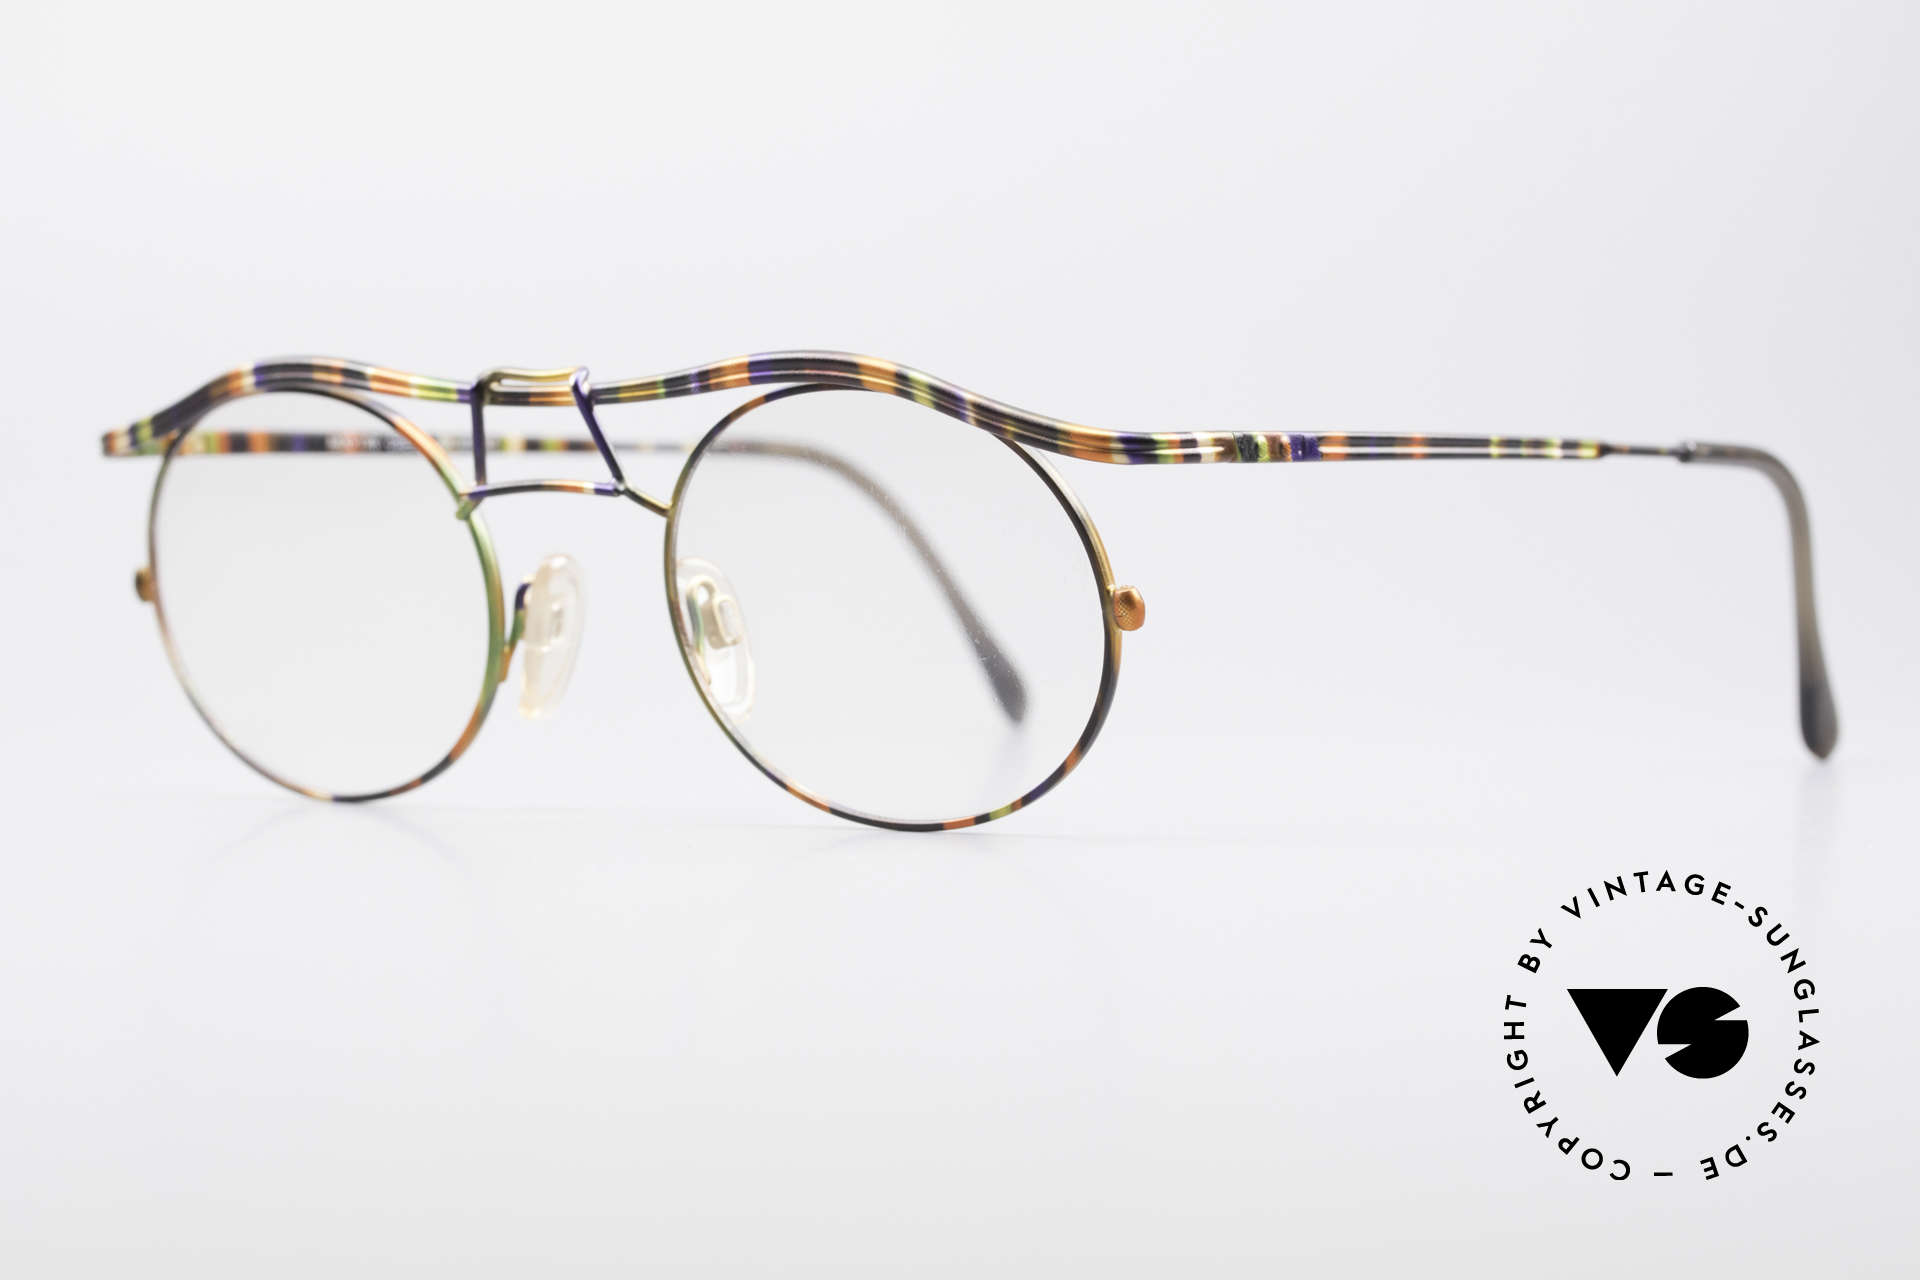 Cazal 1110 - Point 2 90's Industrial Eyeglass-Frame, tangible superior crafting quality (made in GERMANY), Made for Men